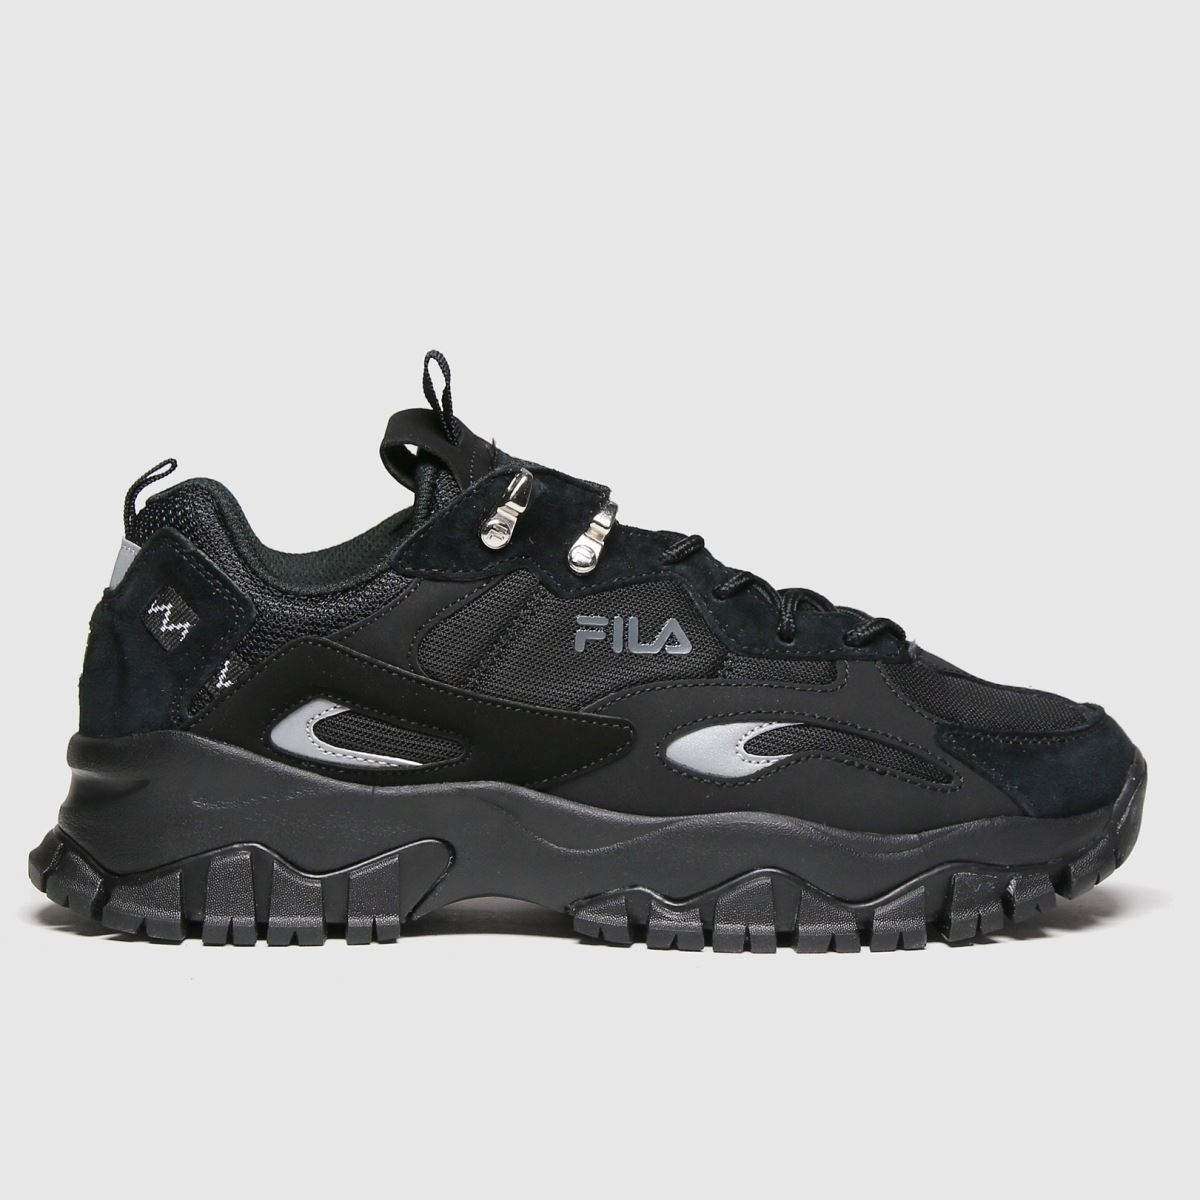 FILA Black Ray Tracer Tr 2 Trainers